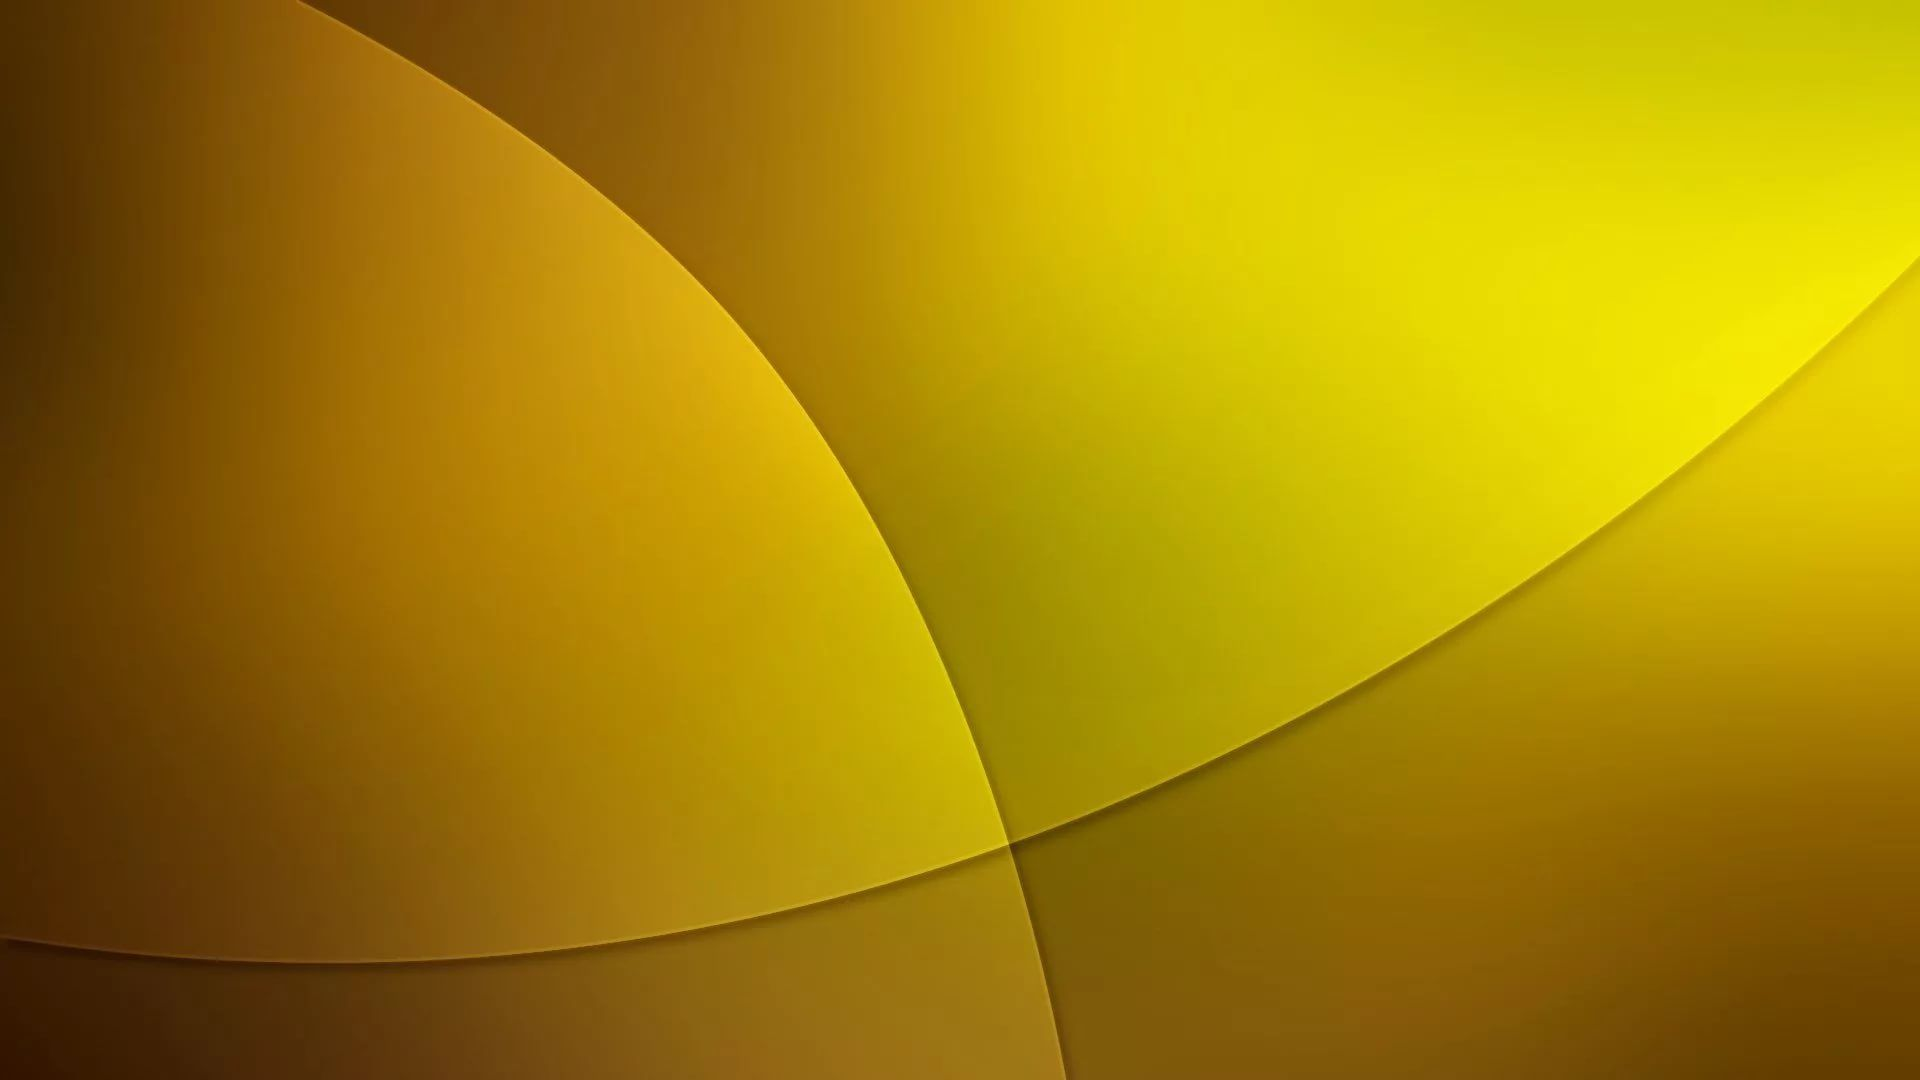 Yellow Abstract hd wallpaper 1080p for pc